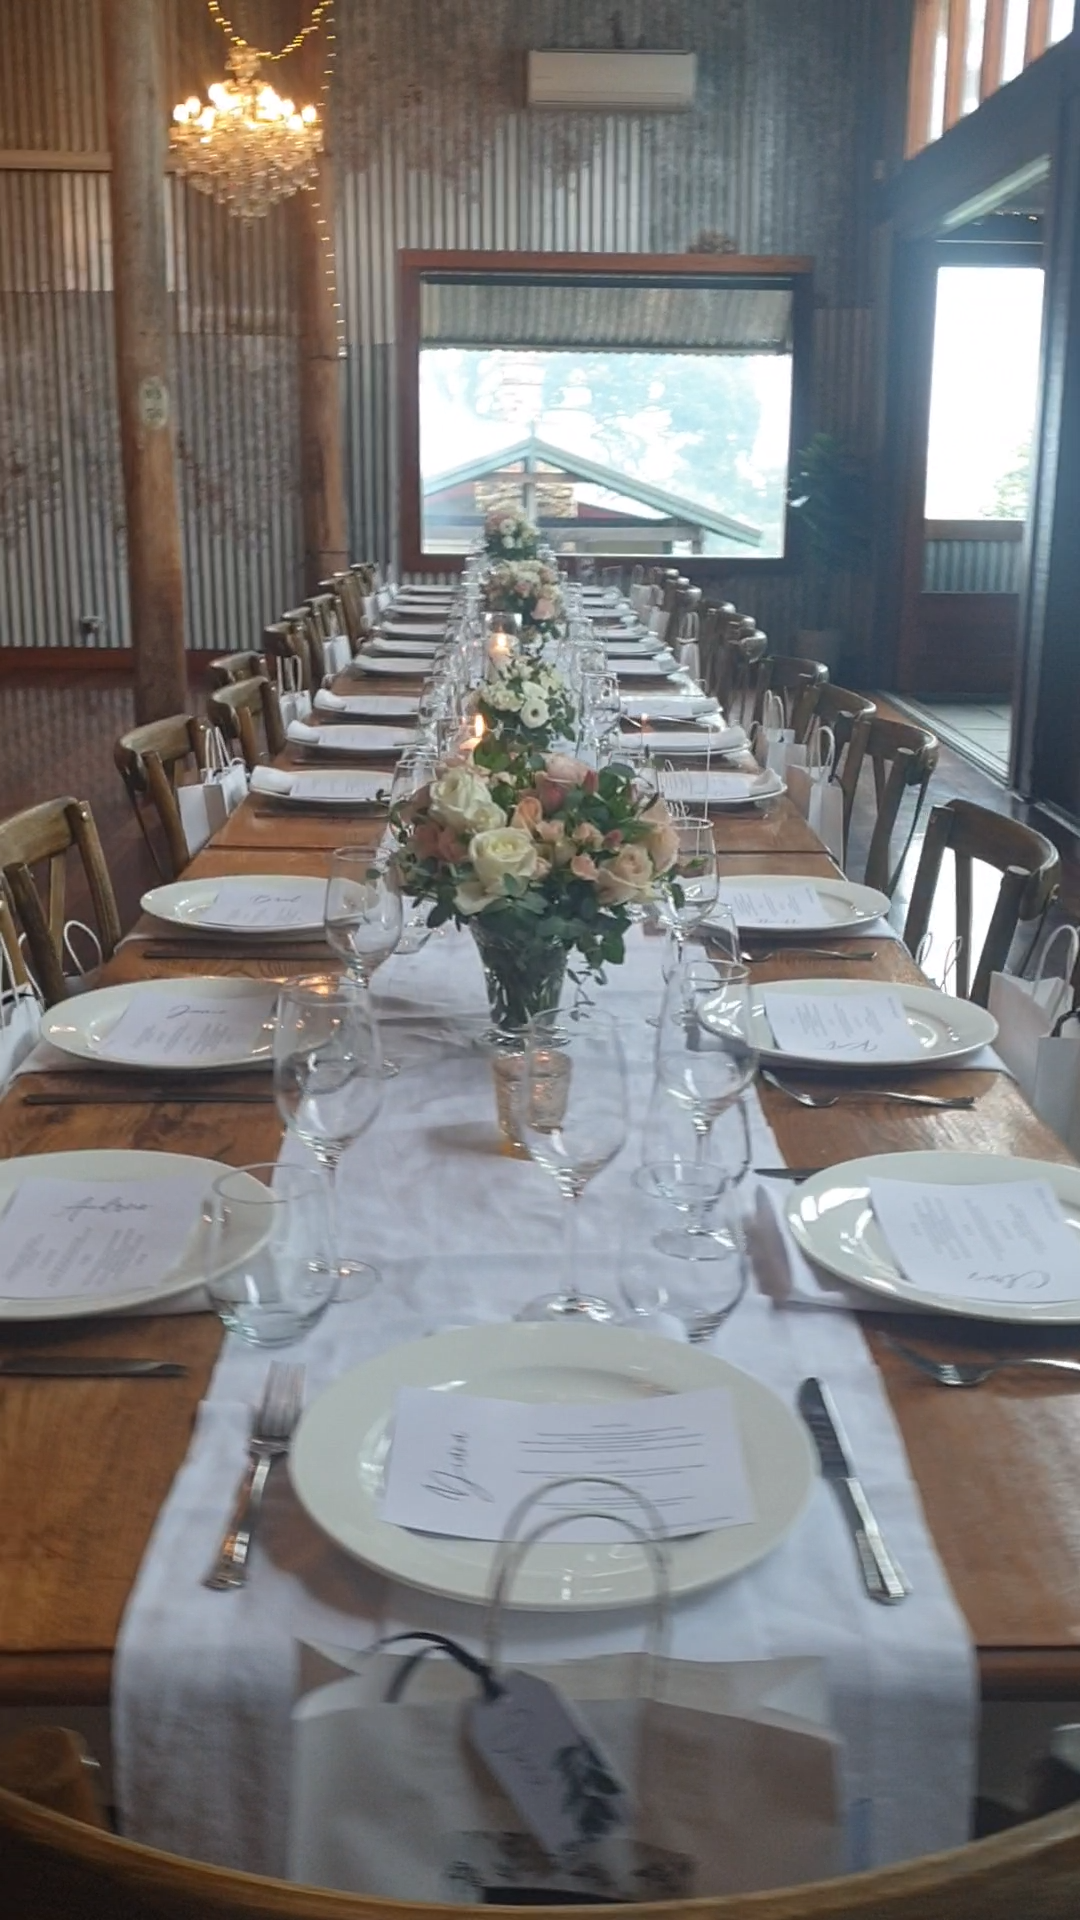 Our Tasting Days are a great way to showcase the different styles that suit our venue and what we can create for our couples on  their wedding day!   #wedding #weddingvenue #weddingstyling #weddinginspiration #weddinginspo #styling #tabledecor #tabledecorations #centrepieces #receptionvenue